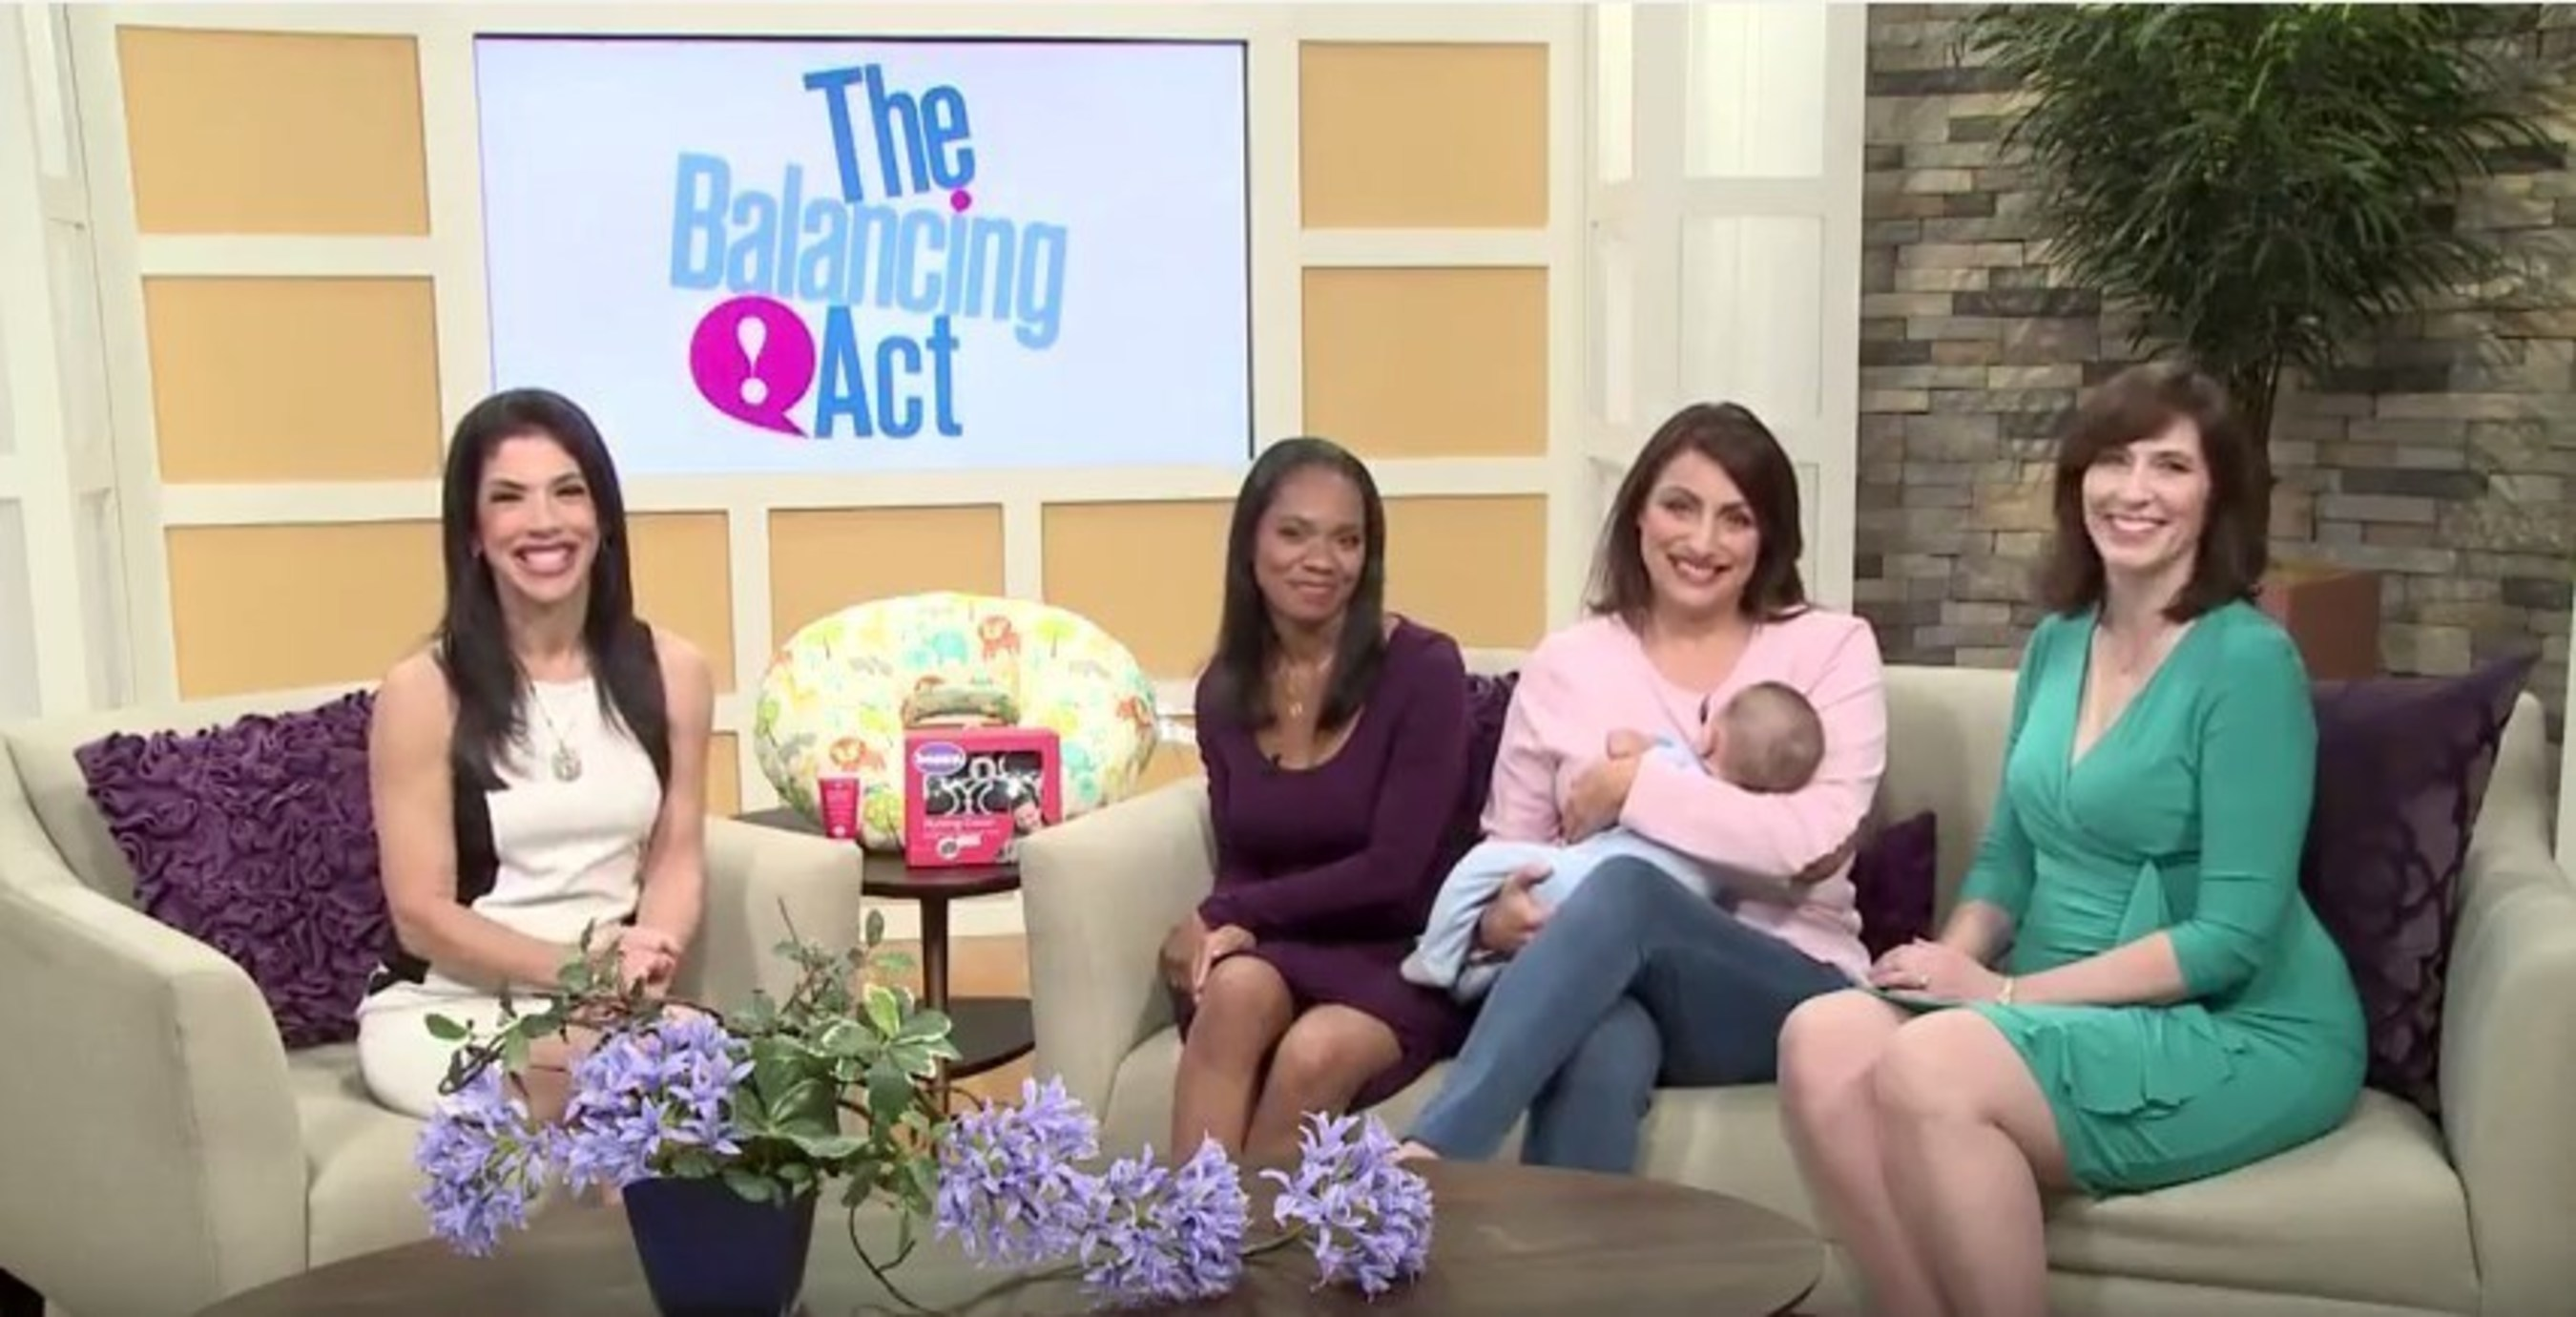 Lifetime Television(R) and The Boppy Company promote the importance of the breastfeeding journey. Tune into The Balancing Act airing on April 27th and May 4th at 7:30AM EDT for tips and information on a successful breastfeeding journey.